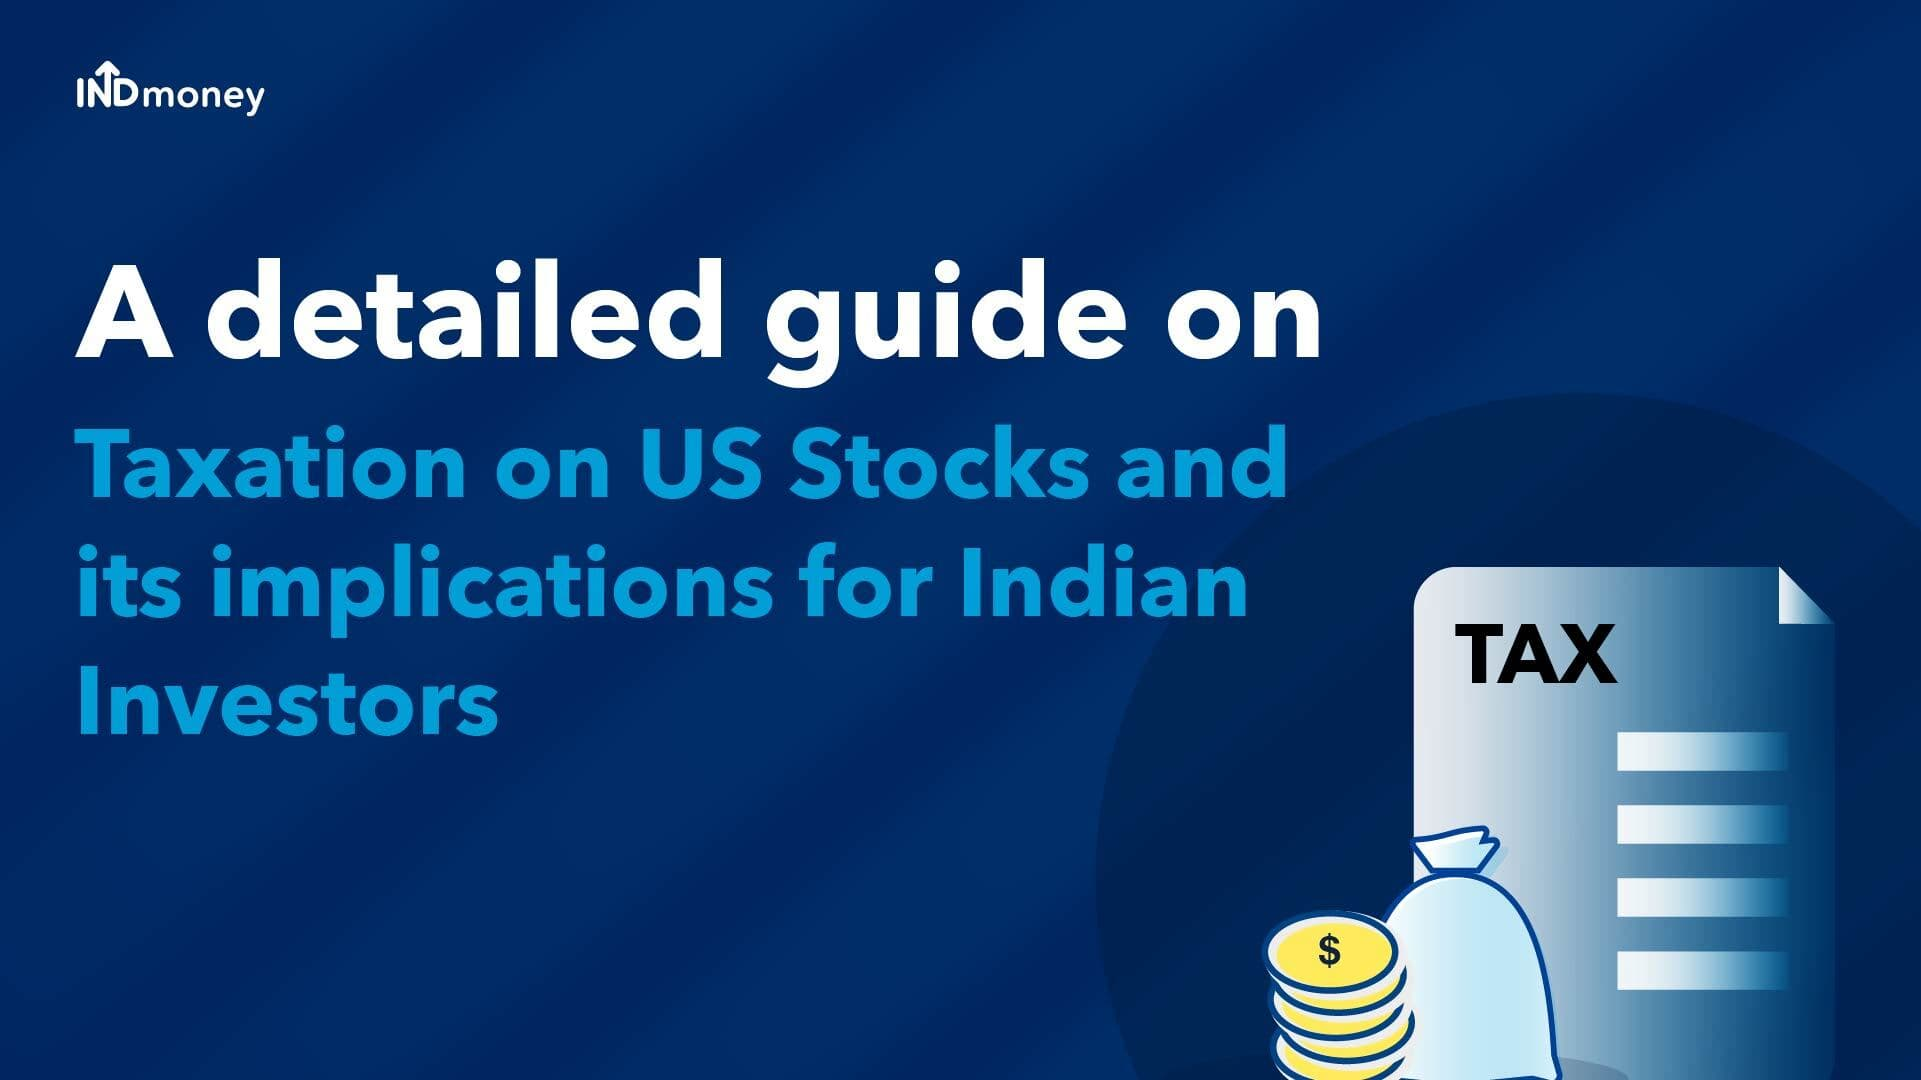 US Stocks Taxation: Tax Implication on US Shares for Indian Investors